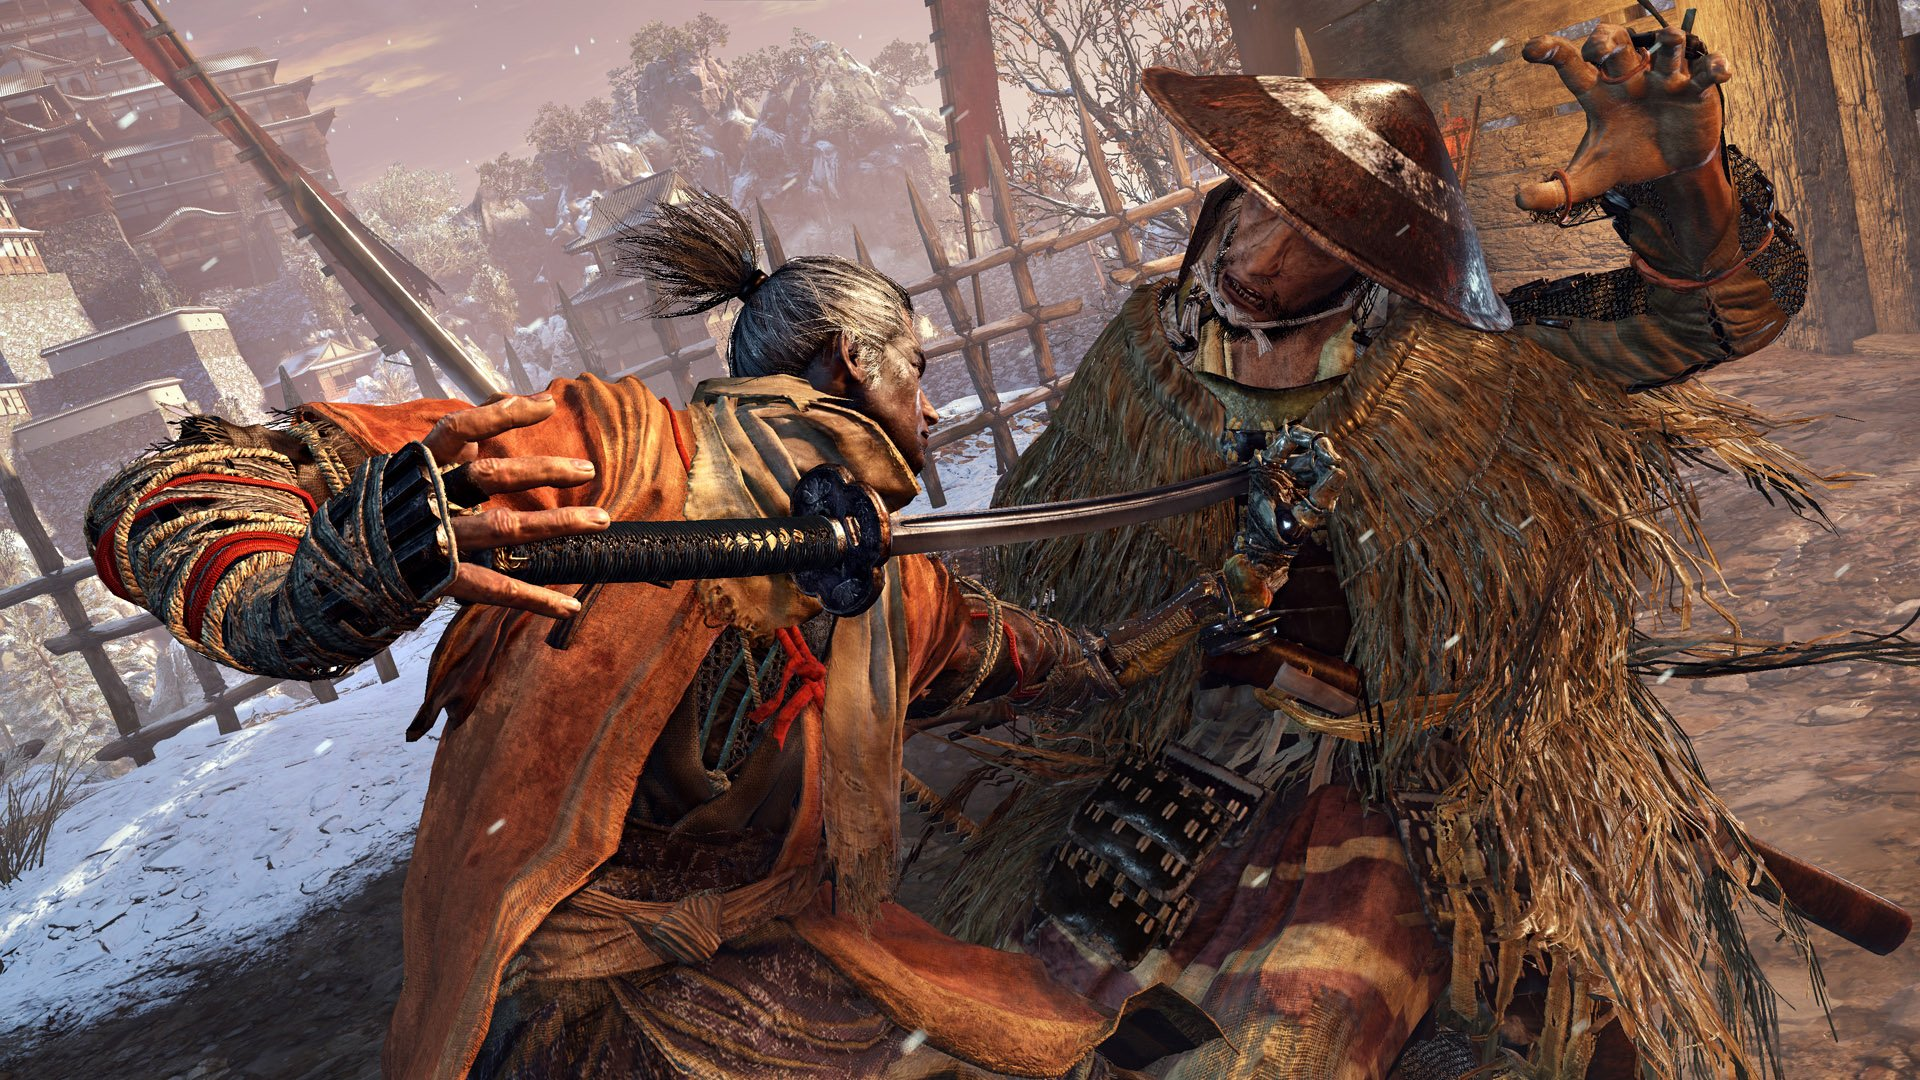 What is the death penalty in Sekiro: Shadows Die Twice